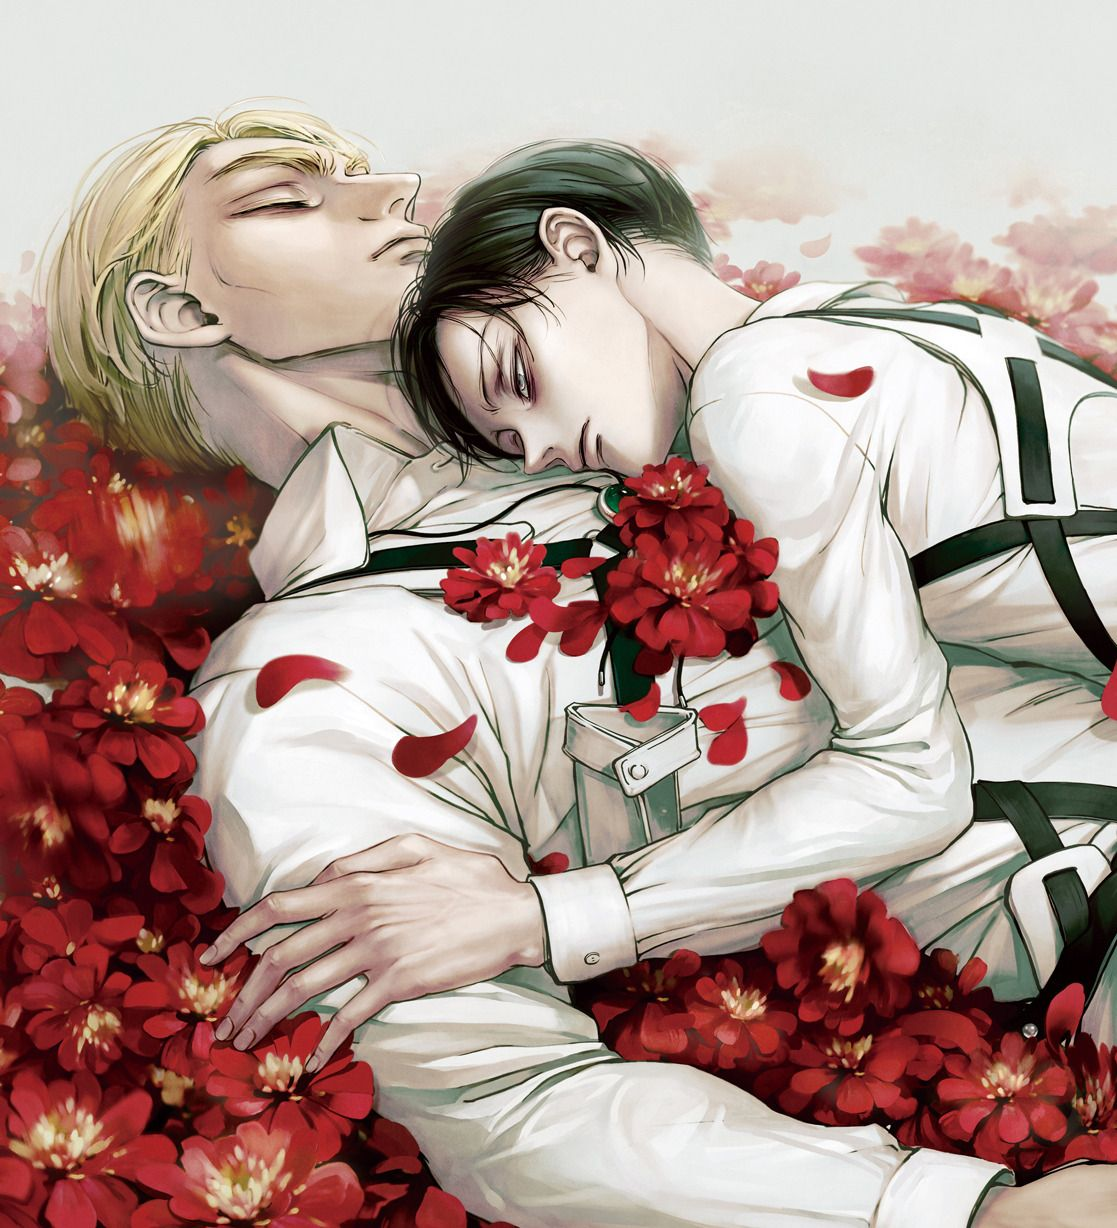 notanotherheichoublog:   sshul please don't remove... -                    Let your heart beat, there is EruRi...